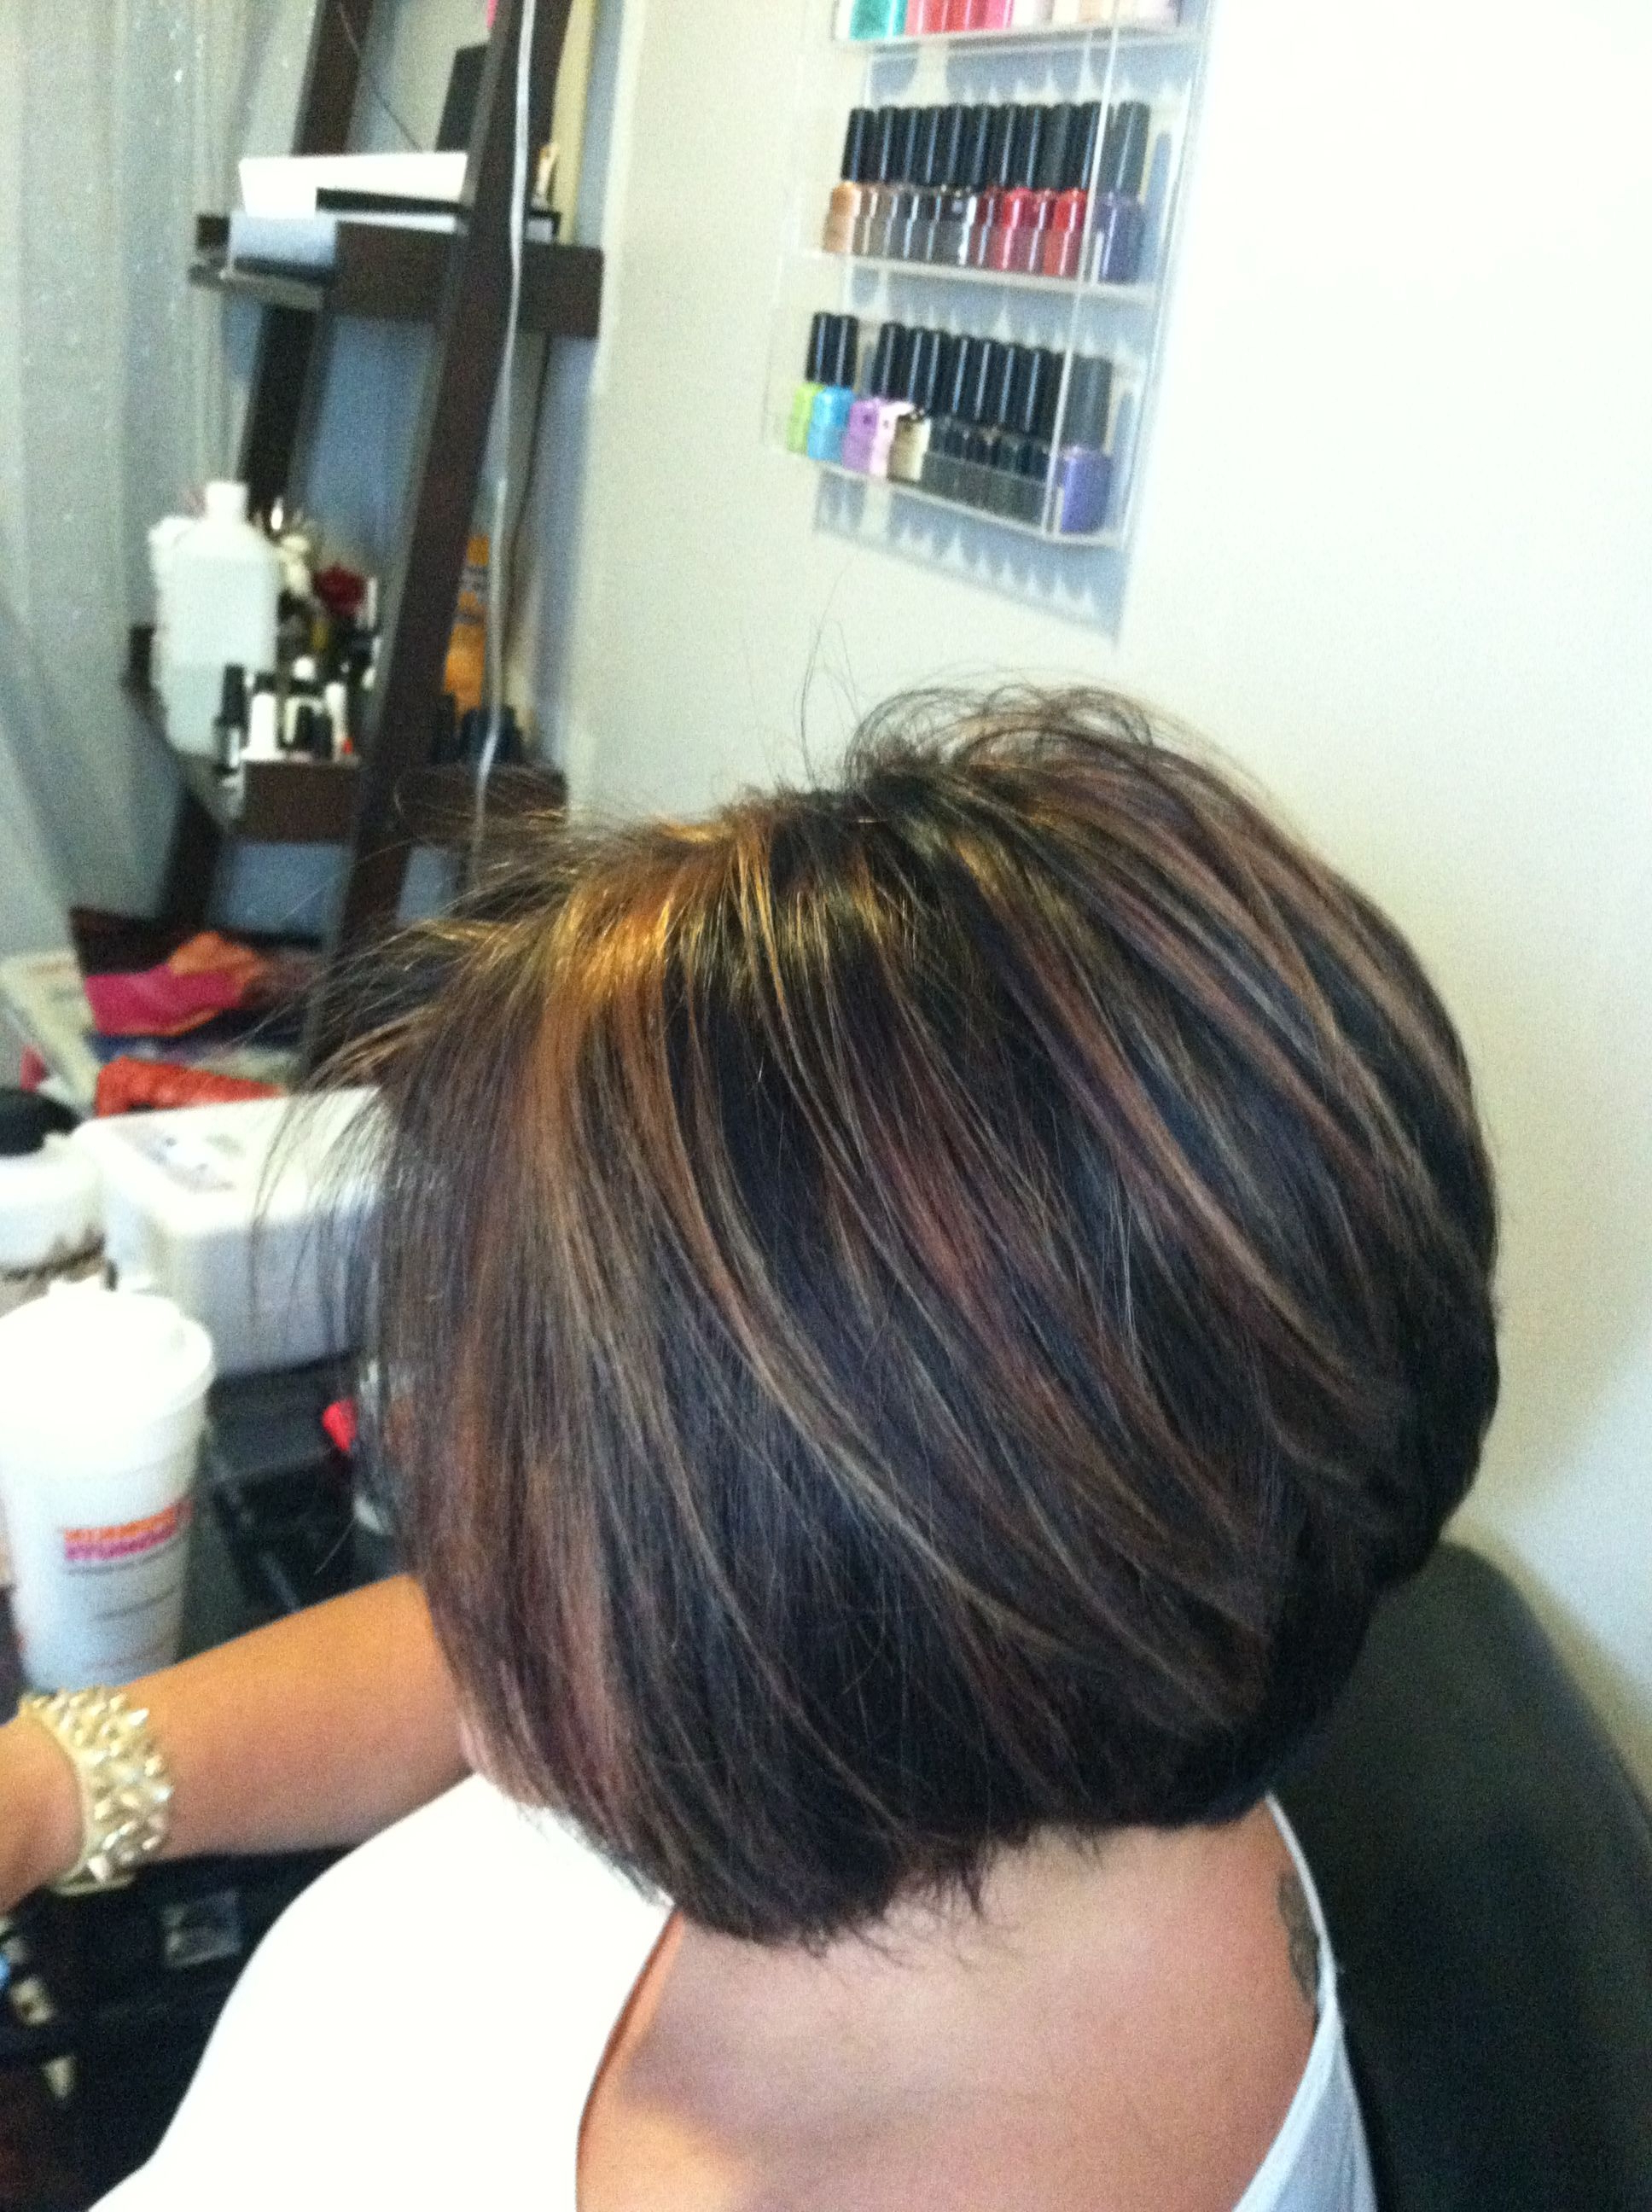 Chunky Caramel Highlights In Dark Hair!!! Short Stacked Bob Love With Short Crop Hairstyles With Colorful Highlights (View 13 of 20)